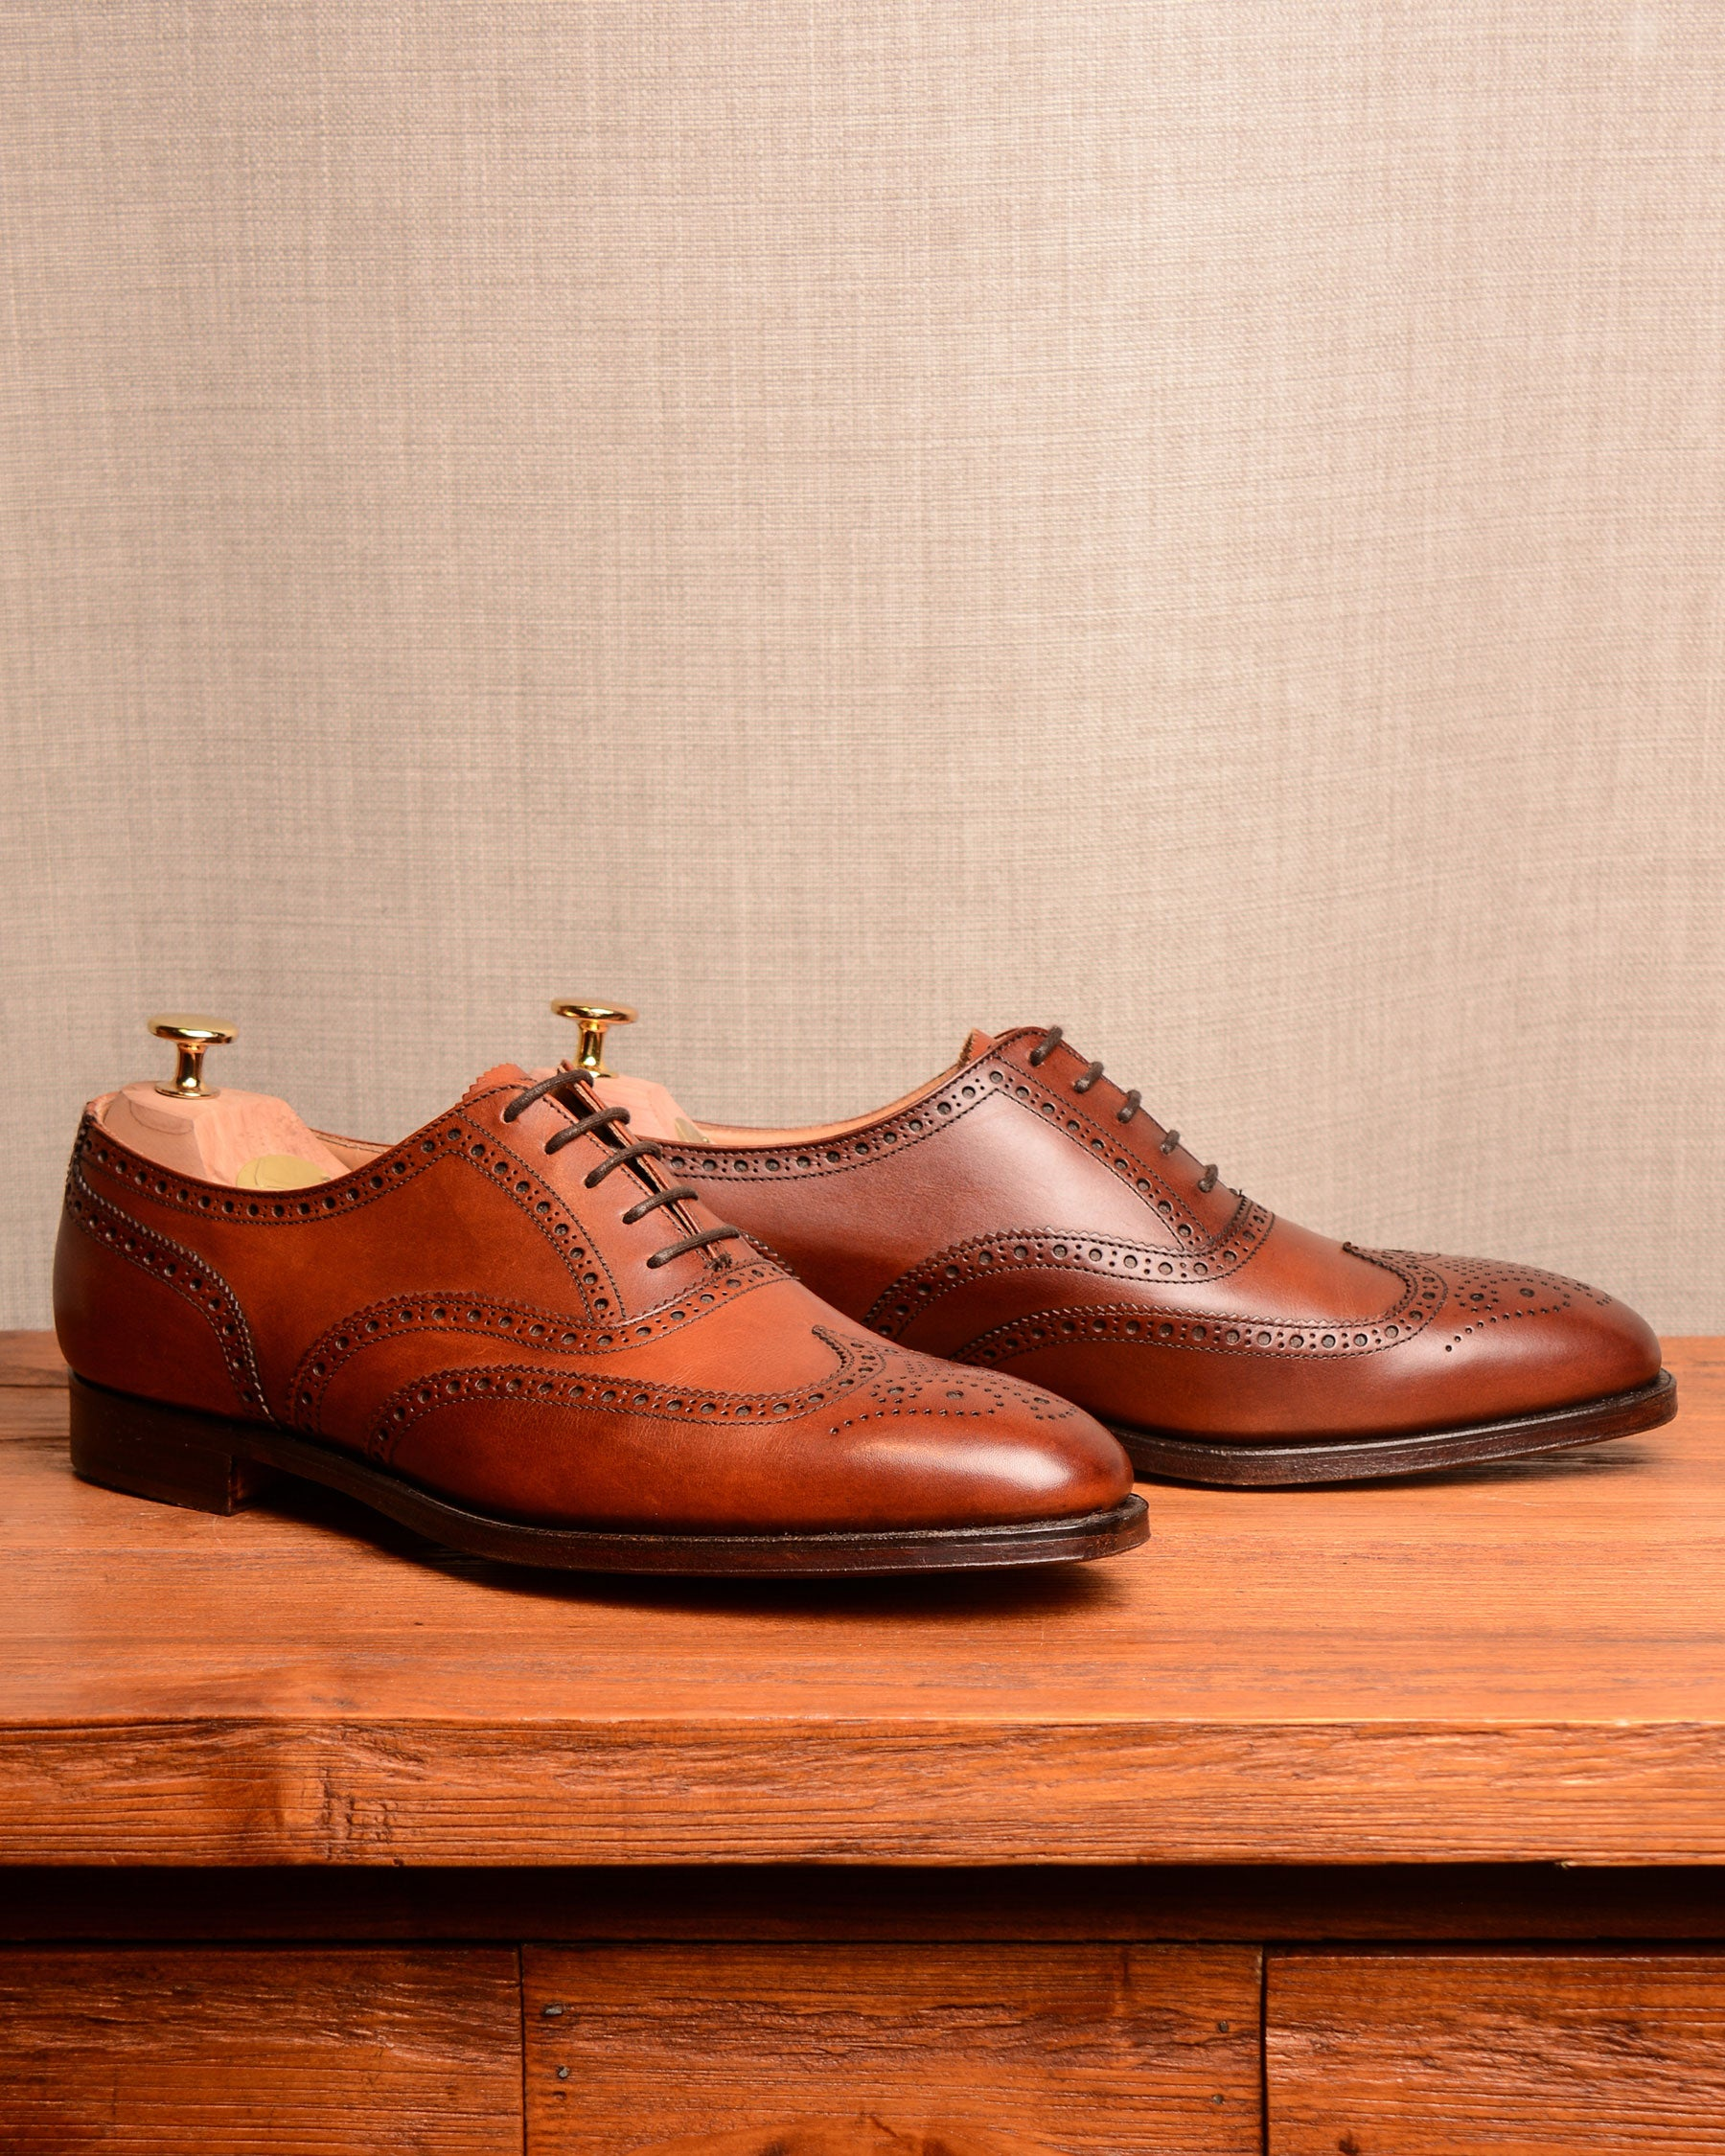 Crockett & Jones Finsbury - Chestnut